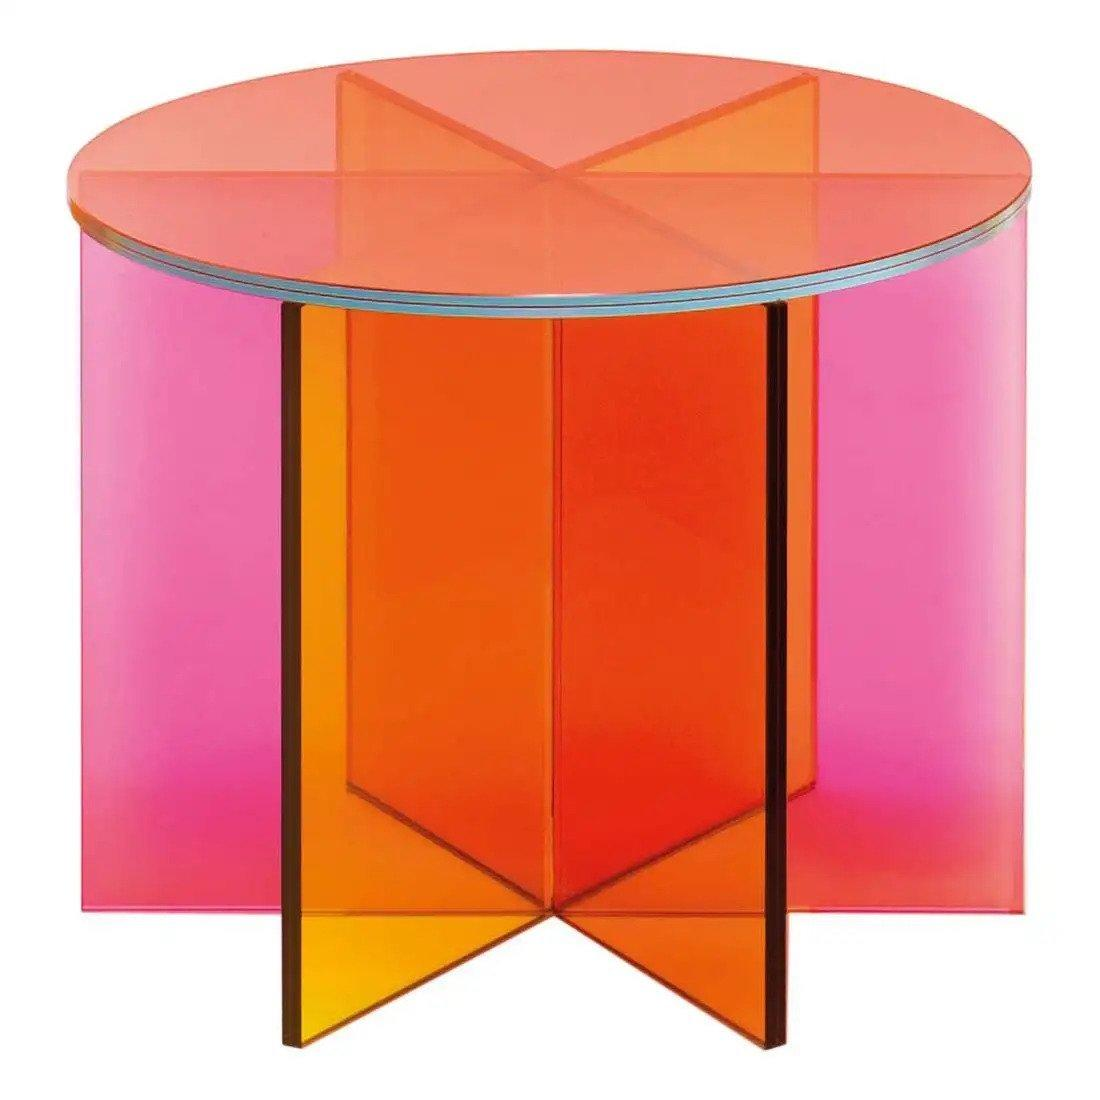 Full transparency: 9 acrylic furniture pieces that will have you thinking clearly